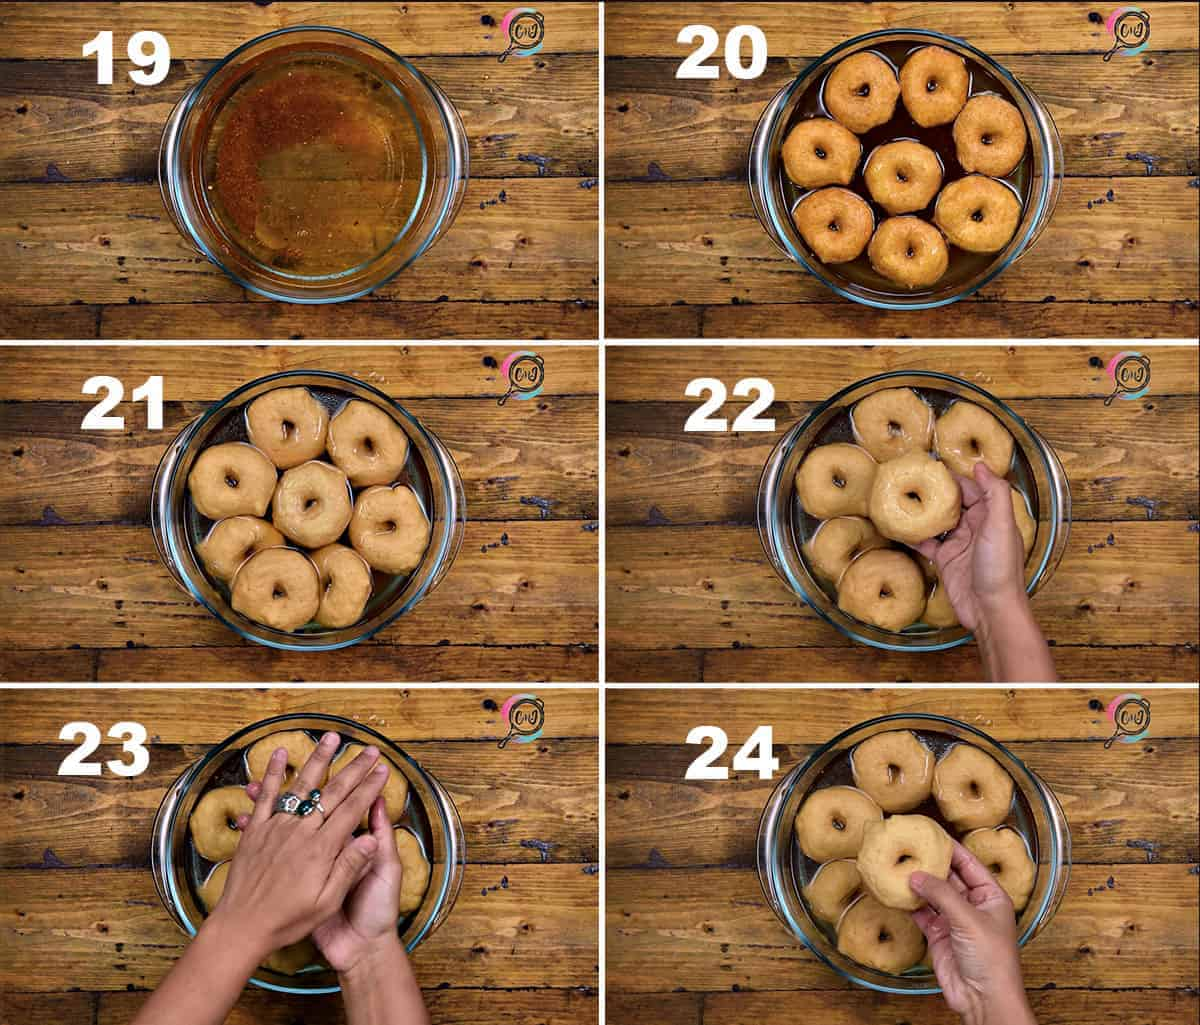 Step by step collage process to soak fried vadas in water.